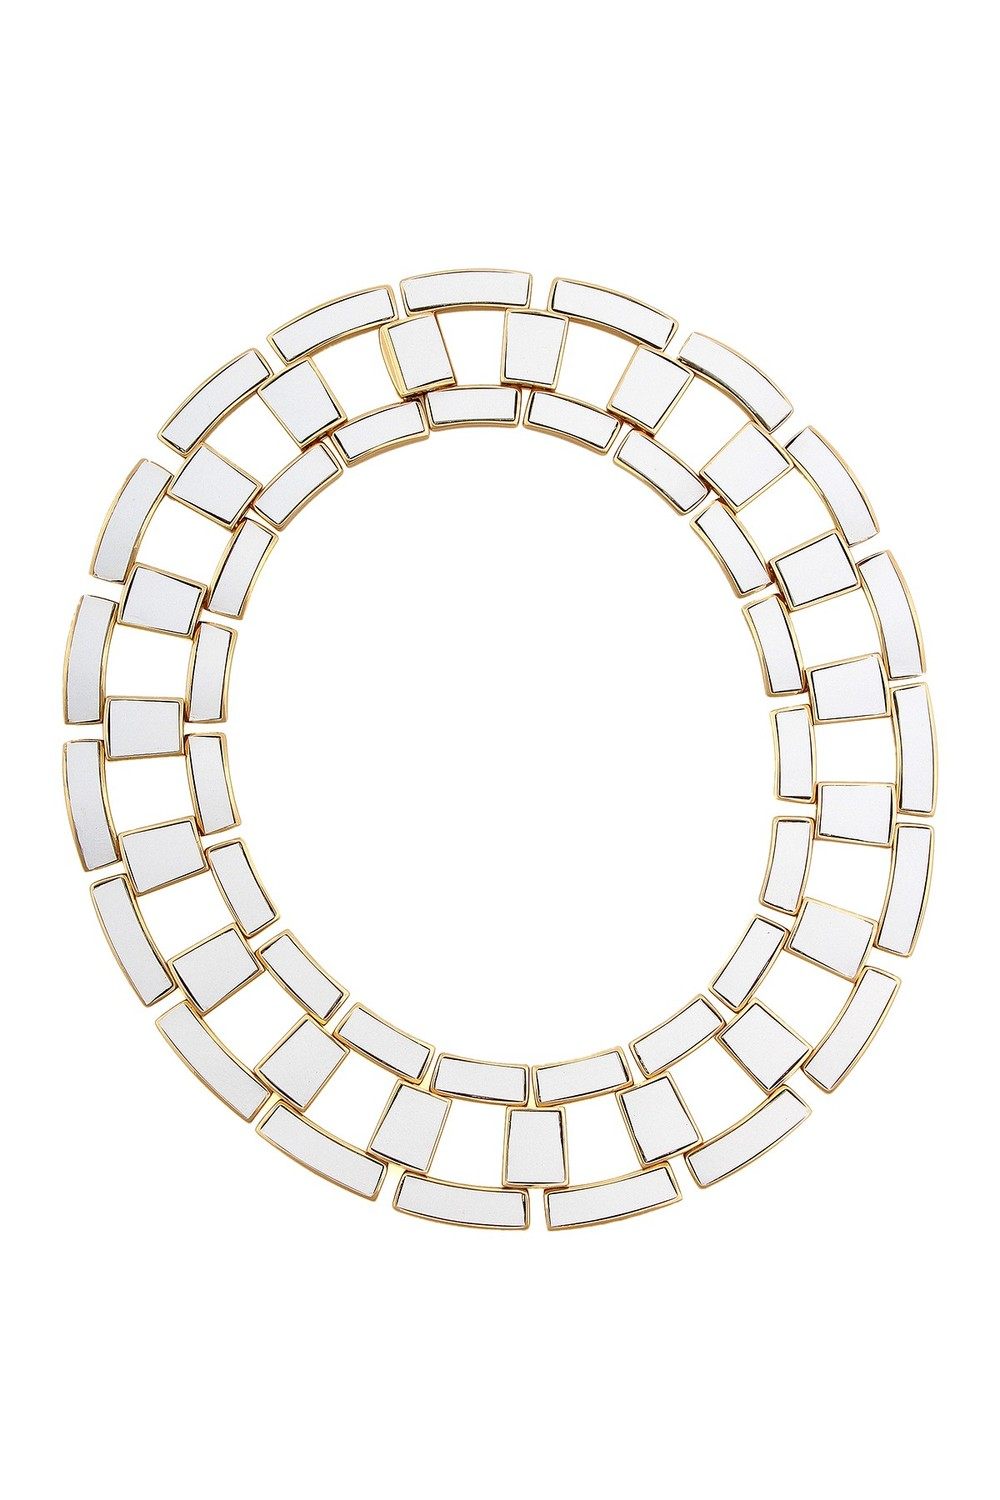 Rachel Zoe Leather Link Collar Necklace. Available in white, black. Nordstrom Rack. Was: $295 Now: $99.